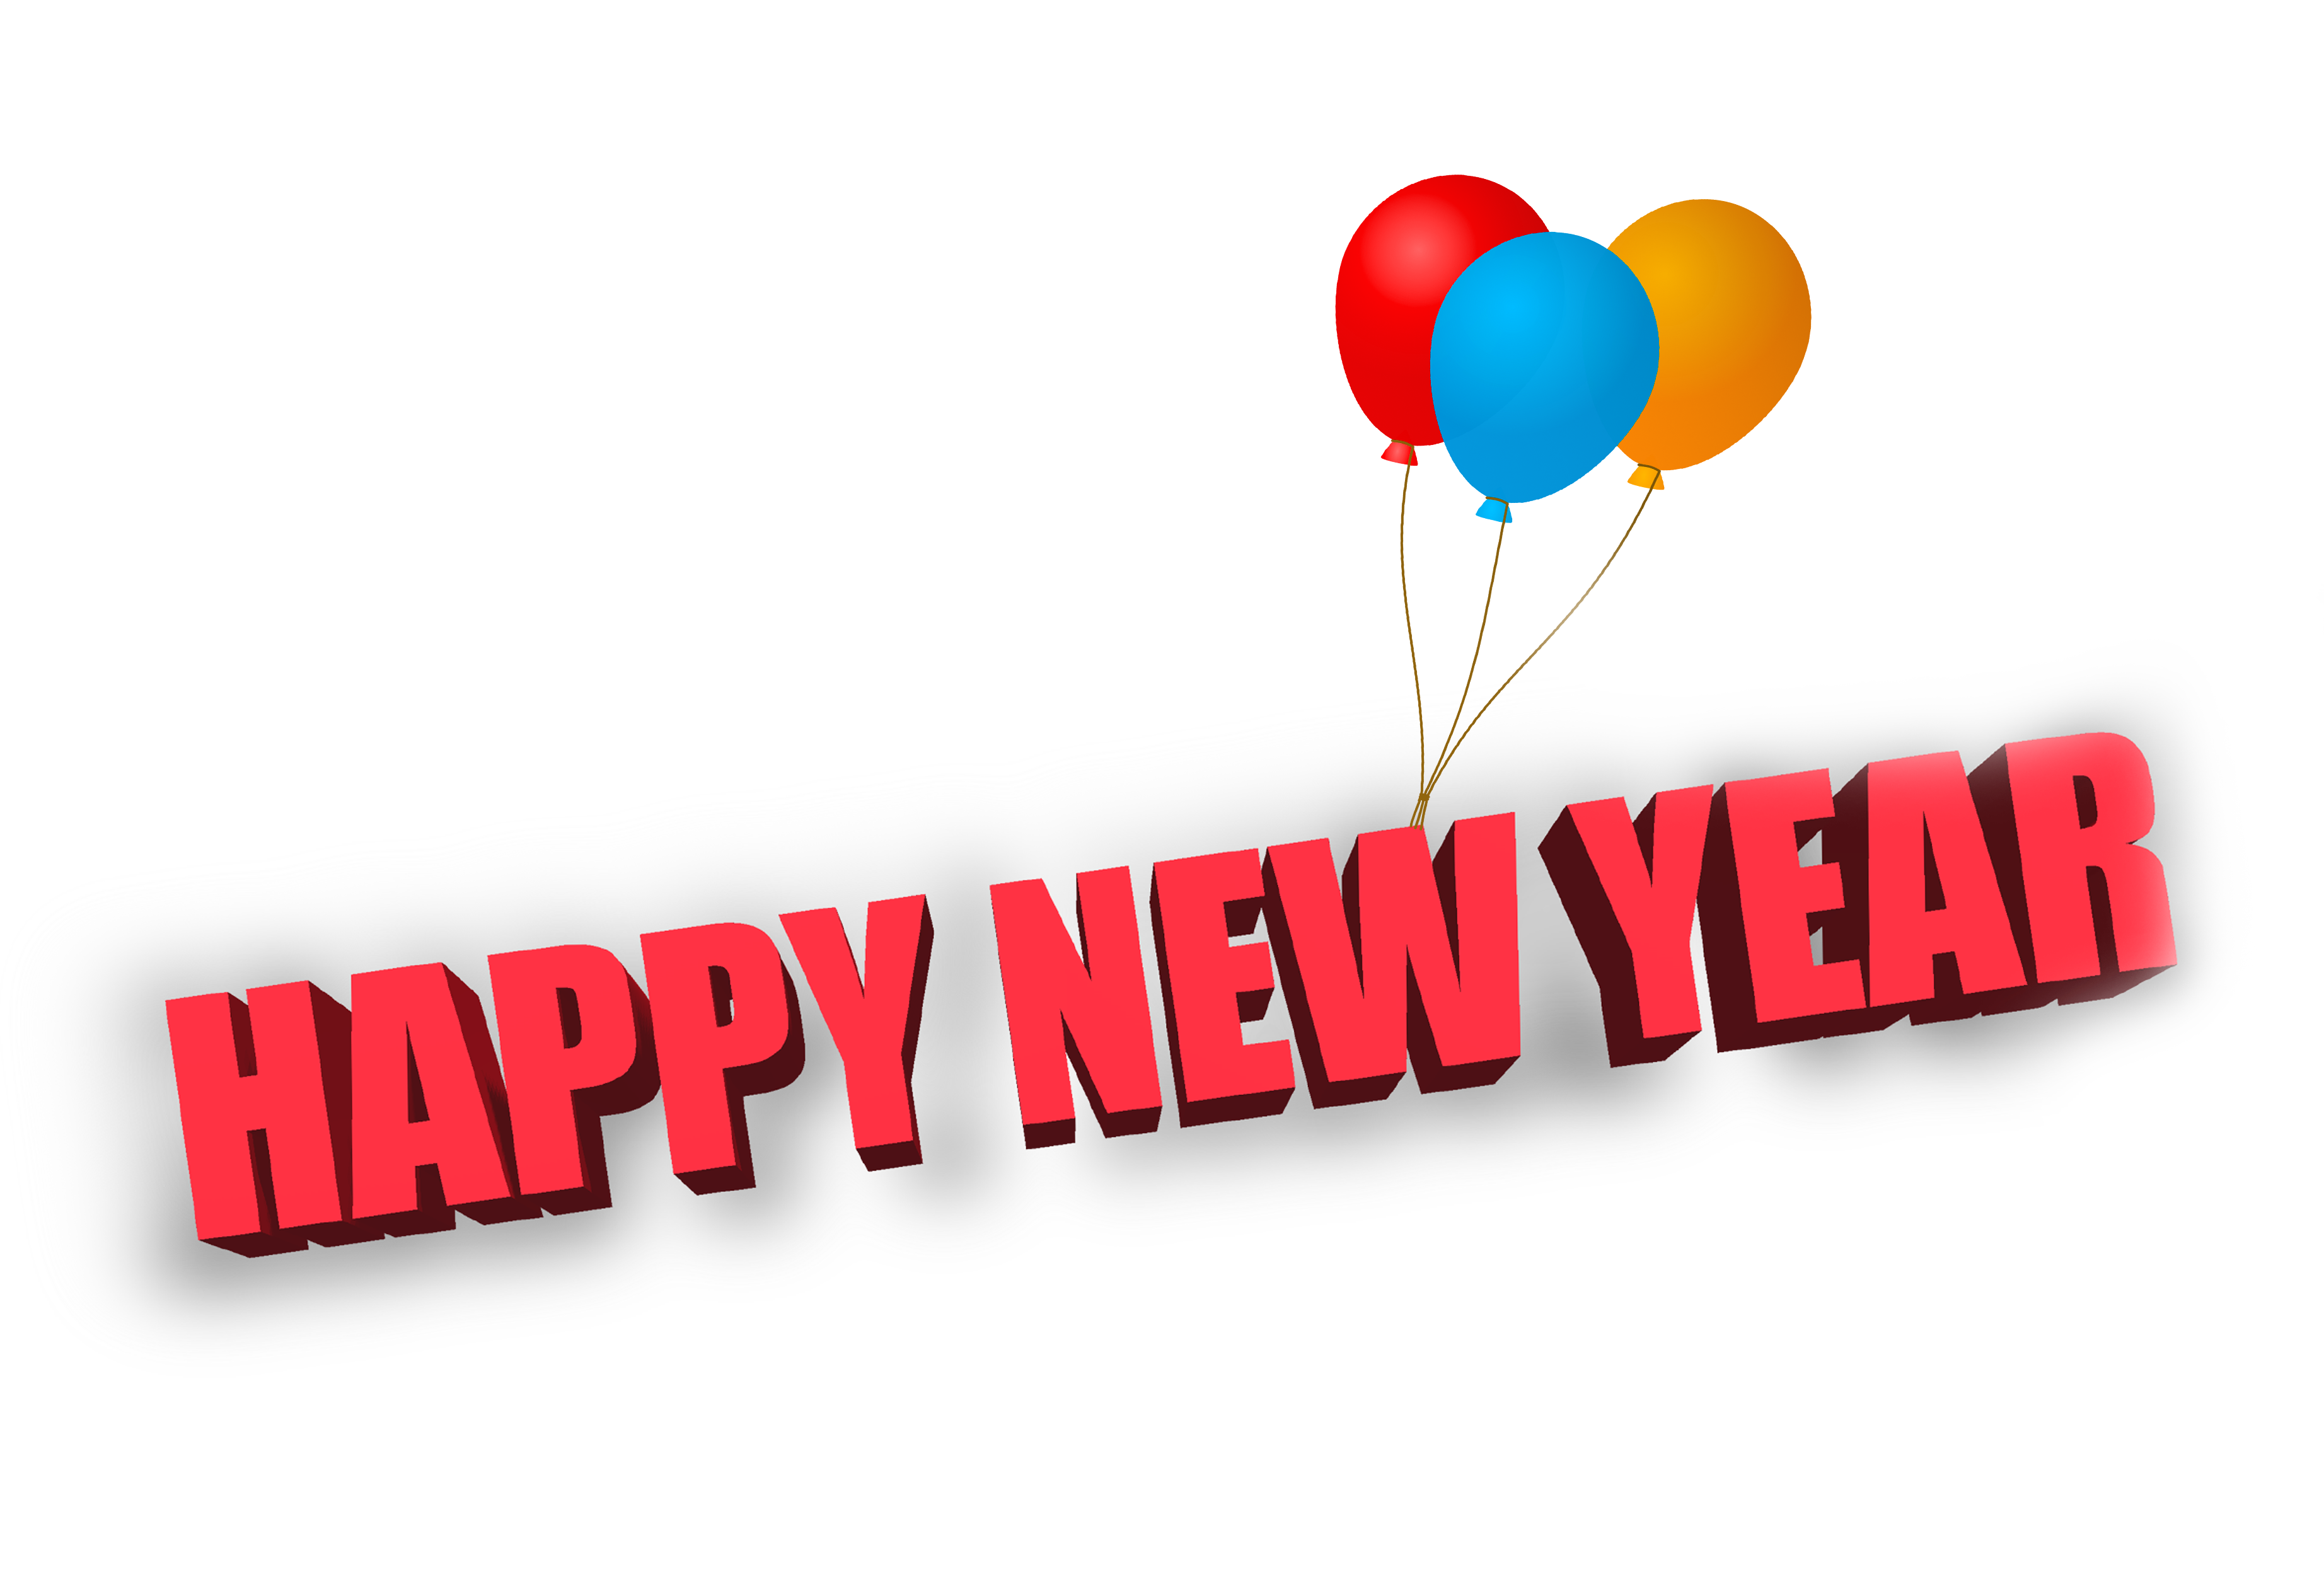 Pin by CB EDITZ on 2019 text png Happy new year text